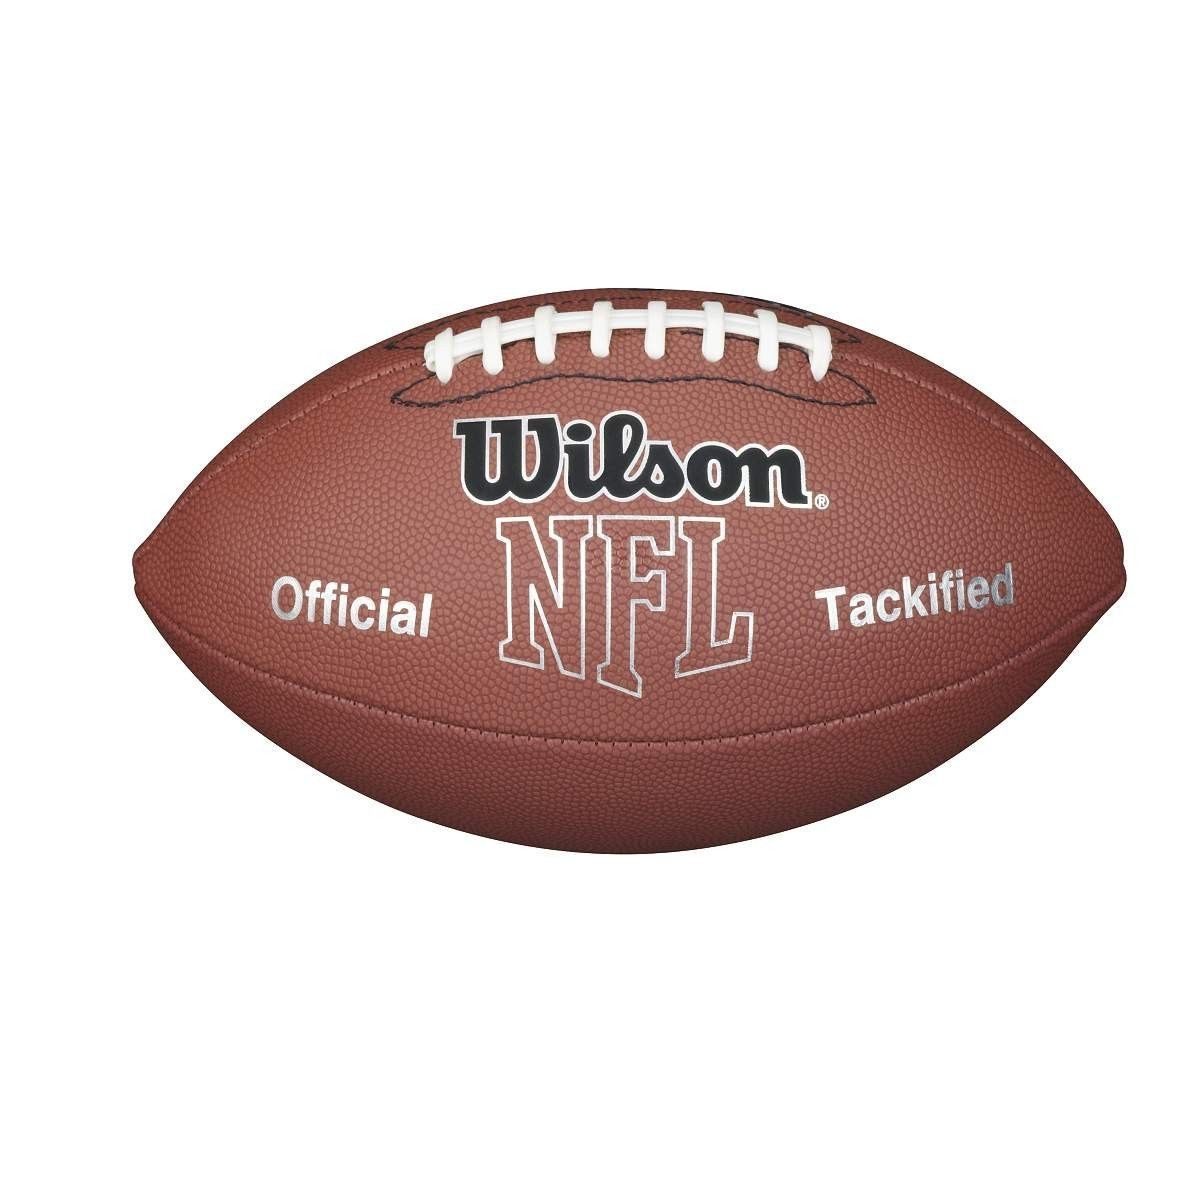 9aeb03829f9 Footballs 21220  Wilson Nfl Mvp Football Wtf1415 Official Size 5 -  BUY IT  NOW ONLY   12.45 on  eBay  footballs  wilson  football  official